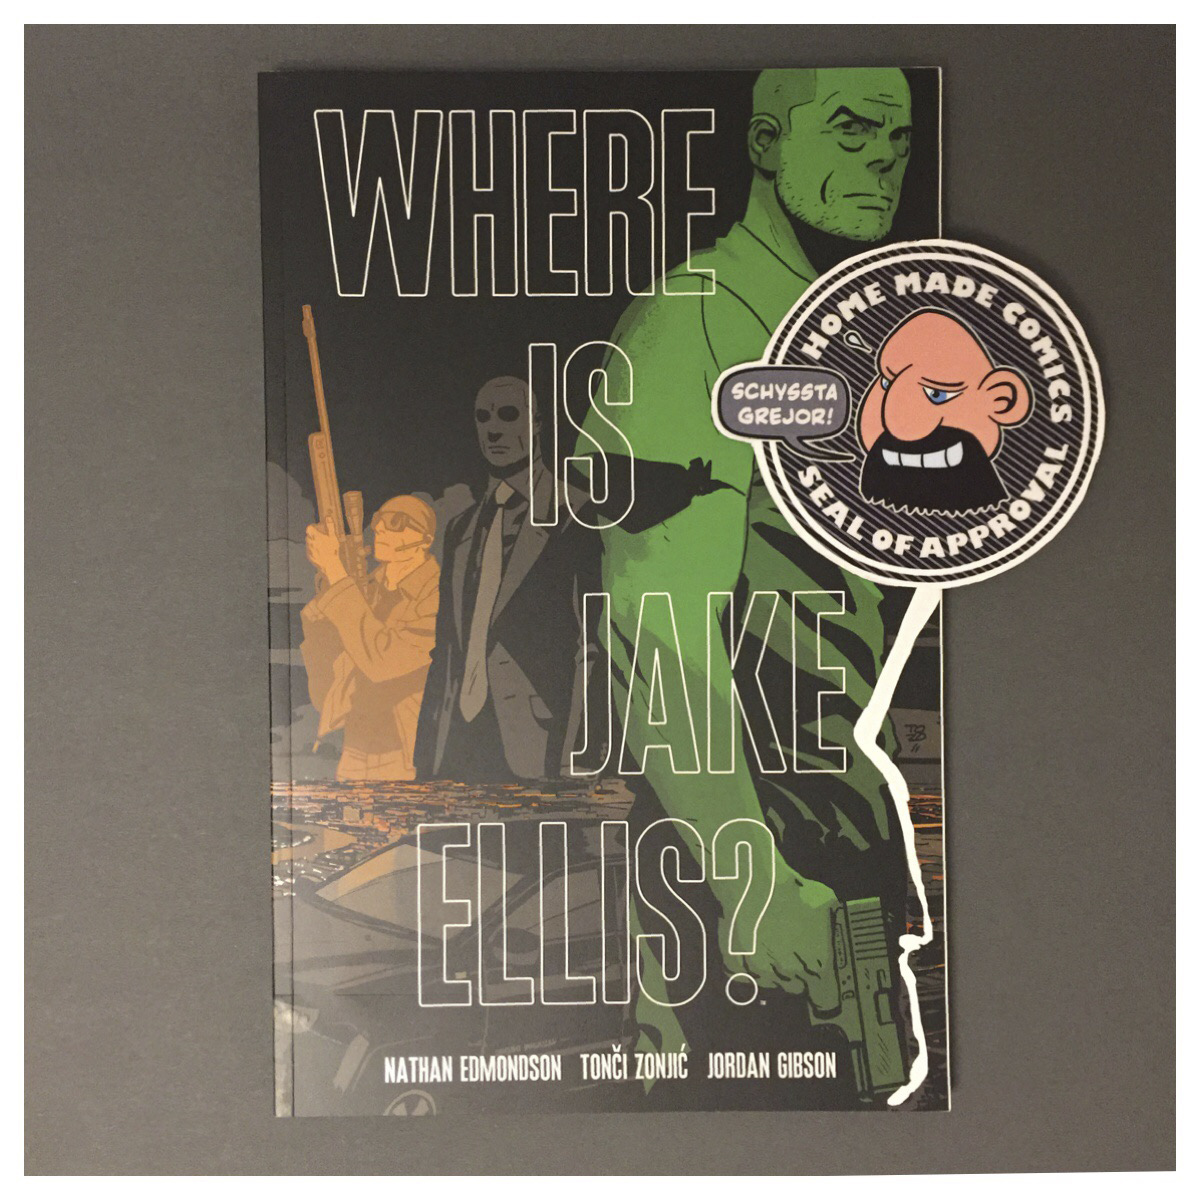 Home Made Comics Seal of Approval #213. Where is Jake Ellis? av Nathan Edmondson och Tonči Zonjić utgiven av Image Comics 2016.